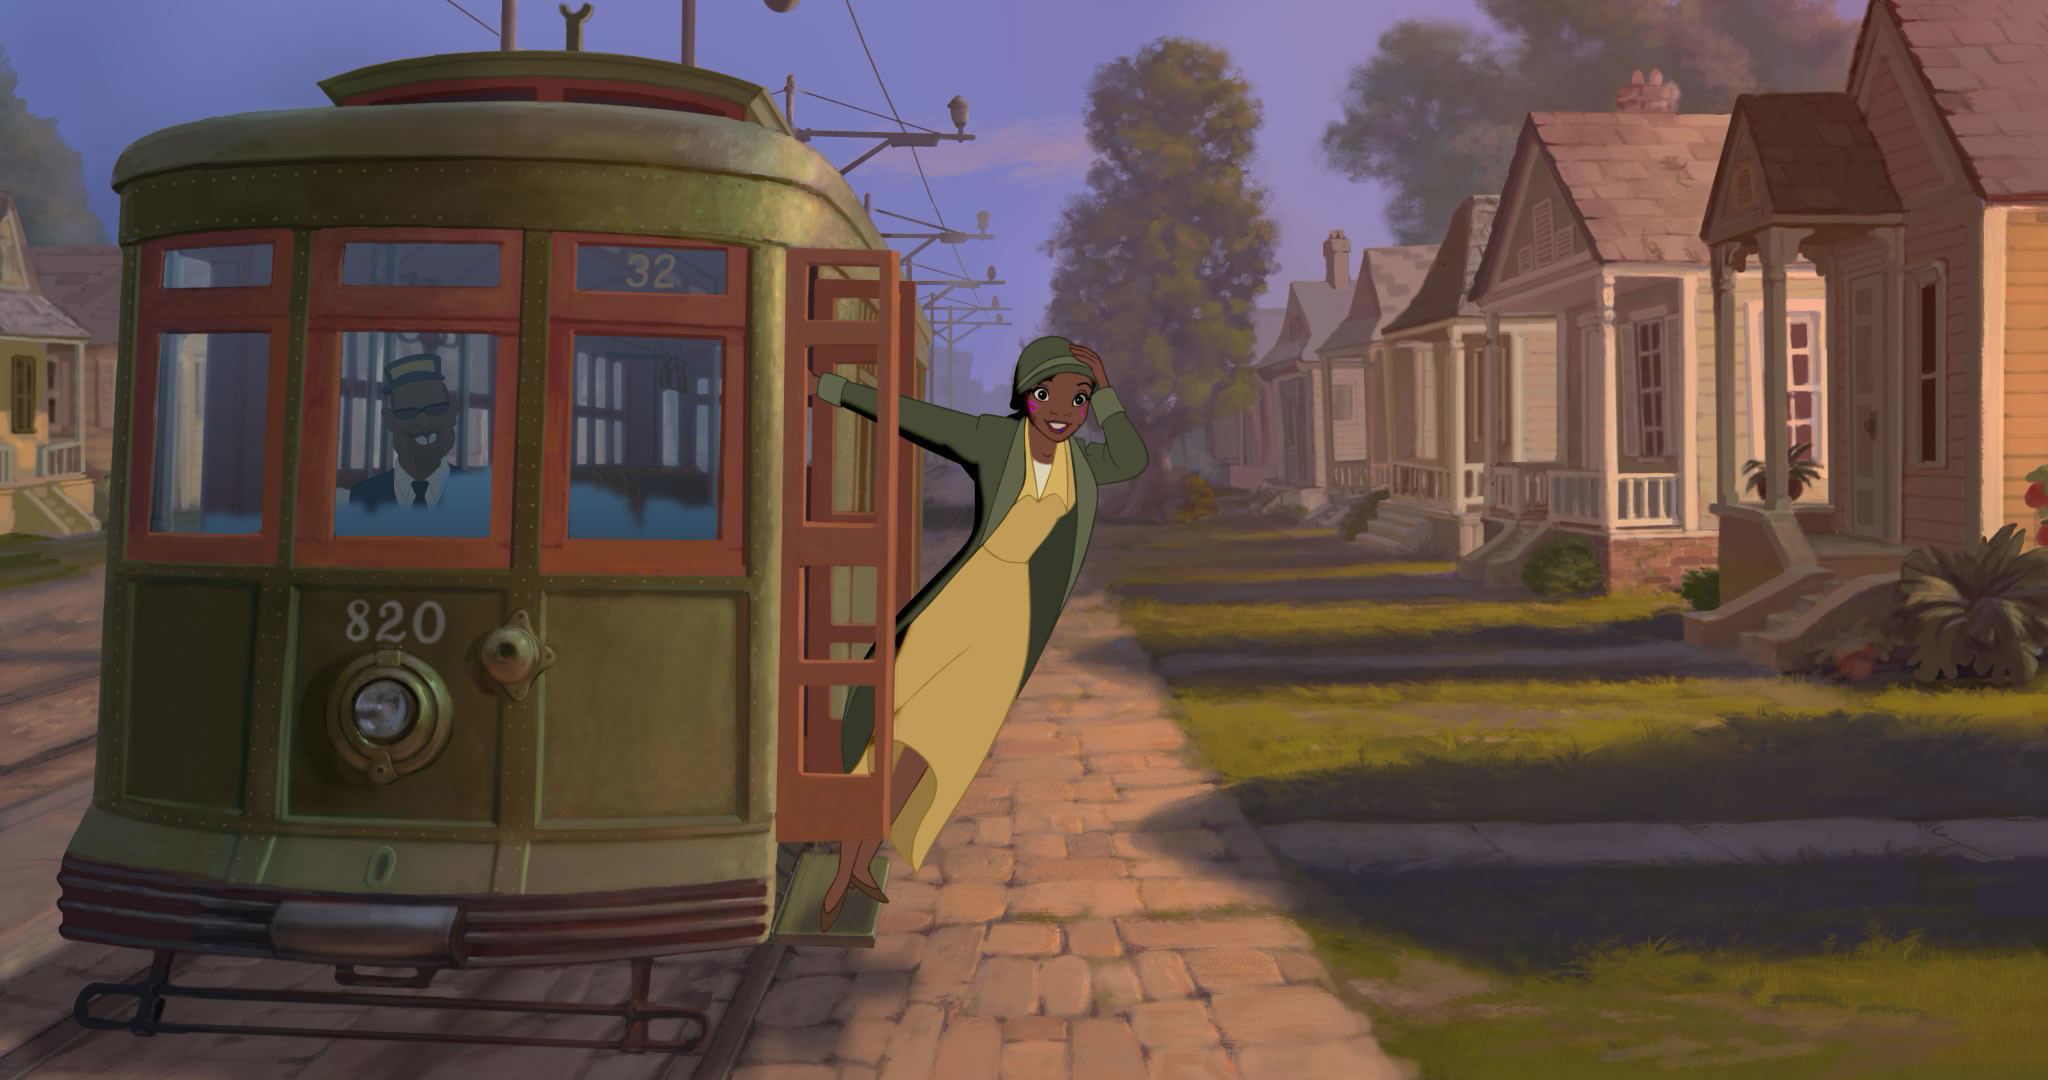 2048x1080 Tiana in Disney's Princess and the Frog wallpaper - Click picture for high  resolution HD wallpaper